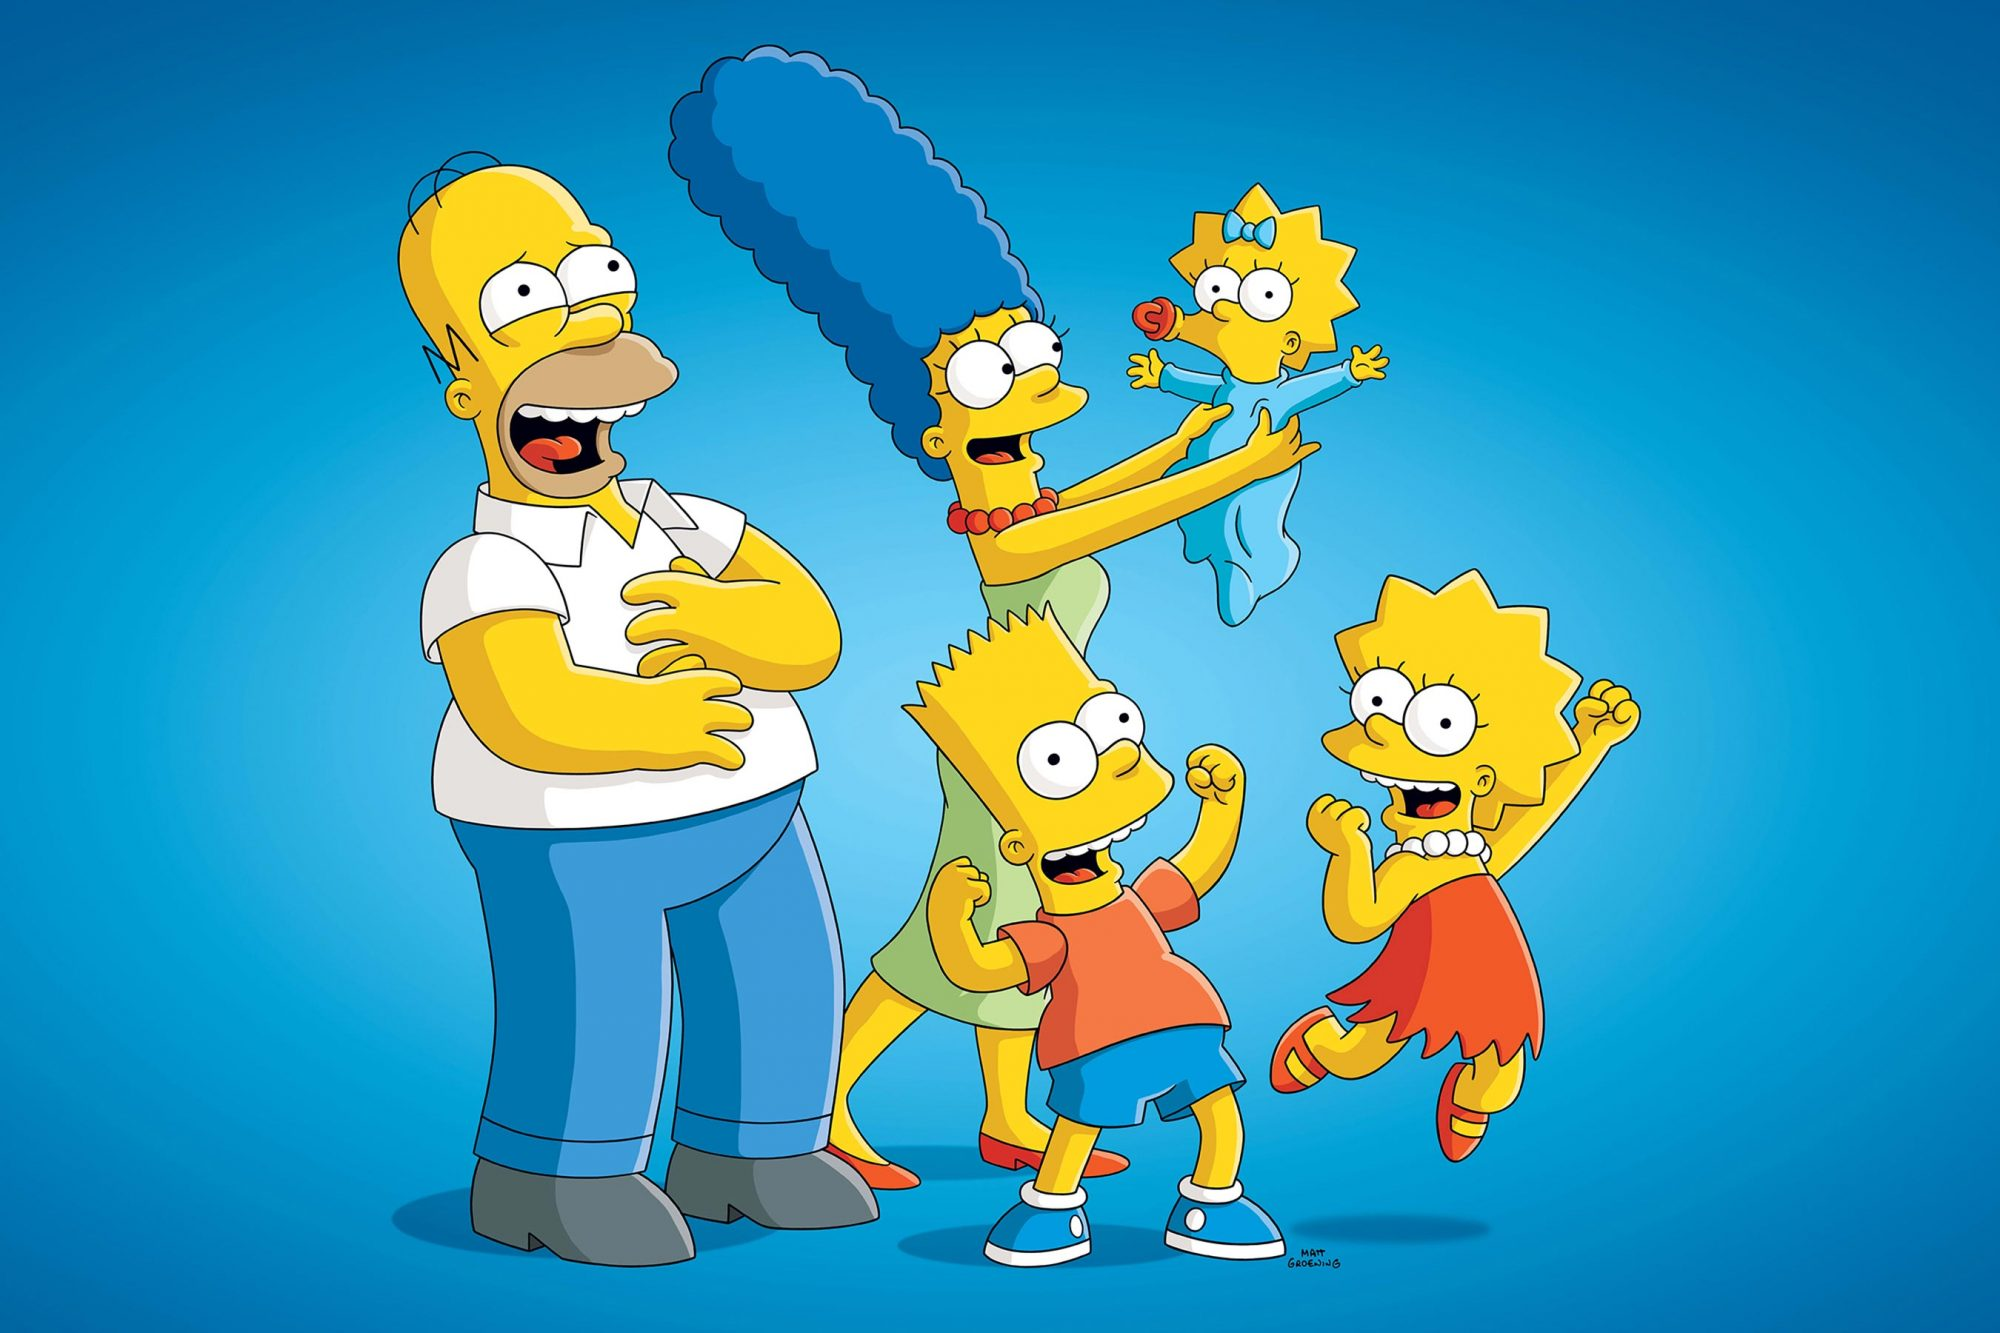 Simpsons_FamilyHappy_2019_R4_hires2